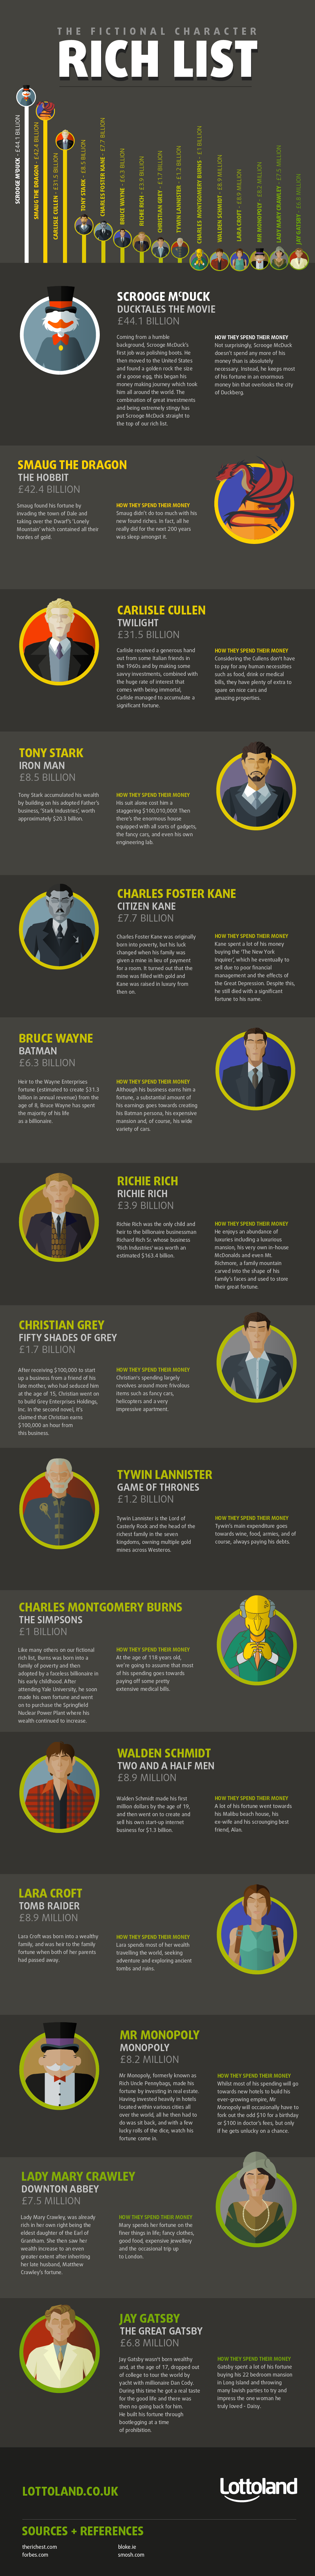 Ultimate Rich List of Fictional Characters #Infographic